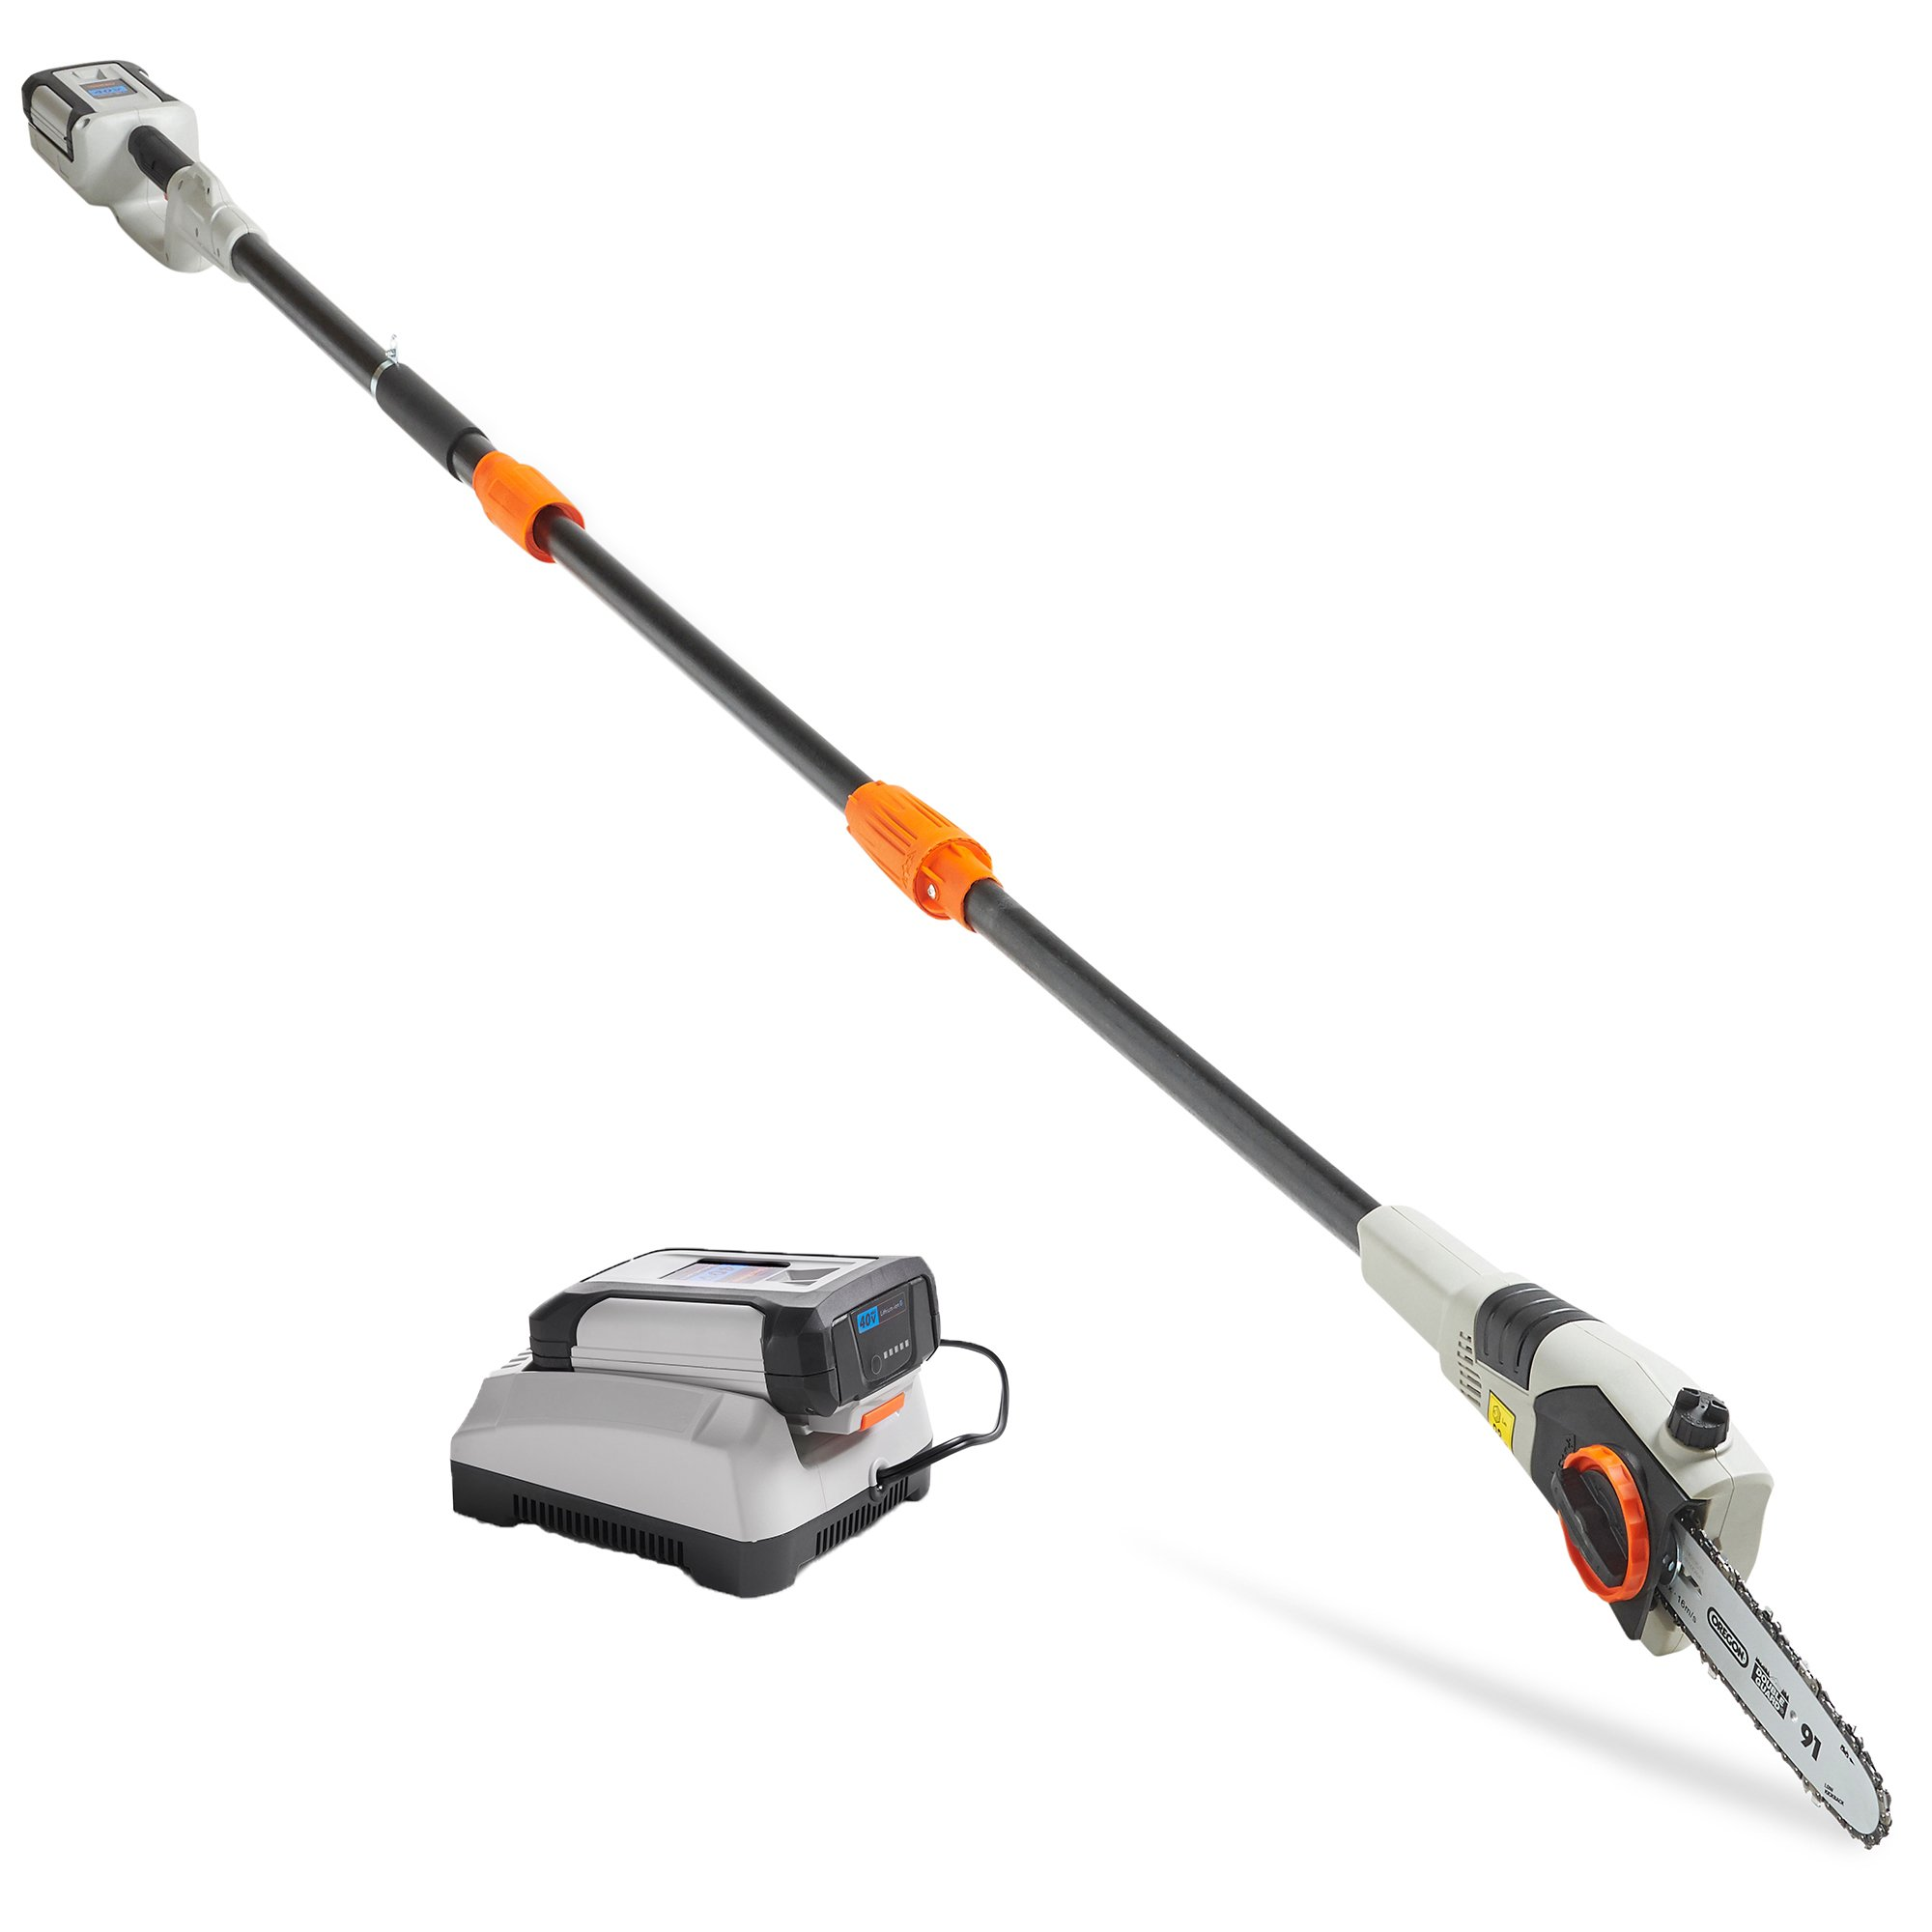 """VonHaus 40V Max 8"""" Cordless Pole Saw with Telescopic Pole for Cutting Branches - 4.0Ah Lithium-Ion Battery and Charger Kit Included"""